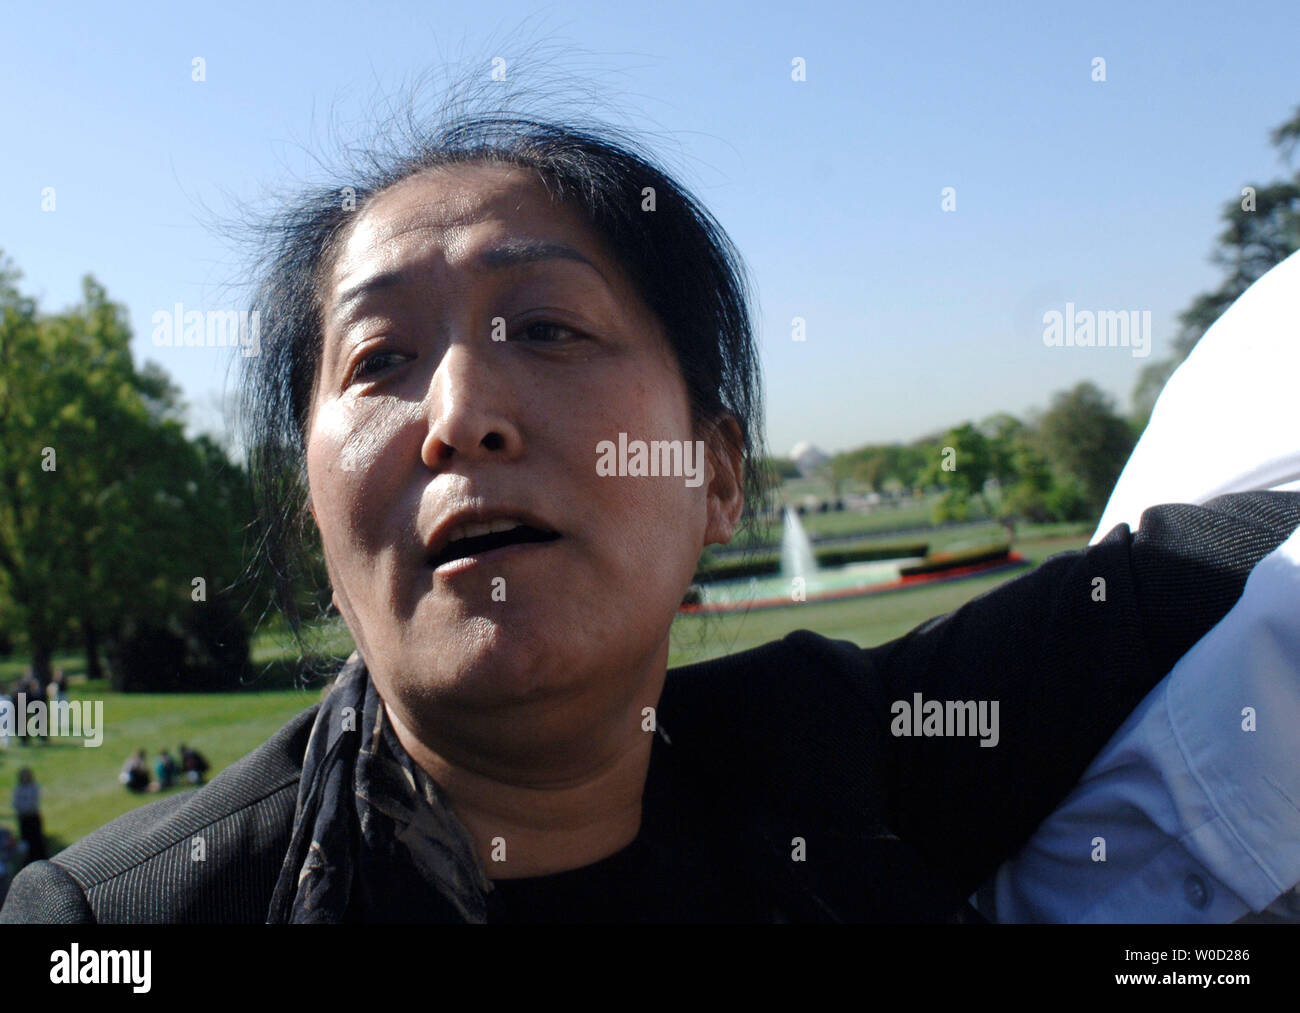 An unidentified woman is removed from the press riser, after screaming and waving a flag as U.S. President George W. Bush and Chinese President Hu Jintao participate in a south lawn arrival ceremony at the White House on April 20, 2006. (UPI Photo/Kevin Dietsch) - Stock Image